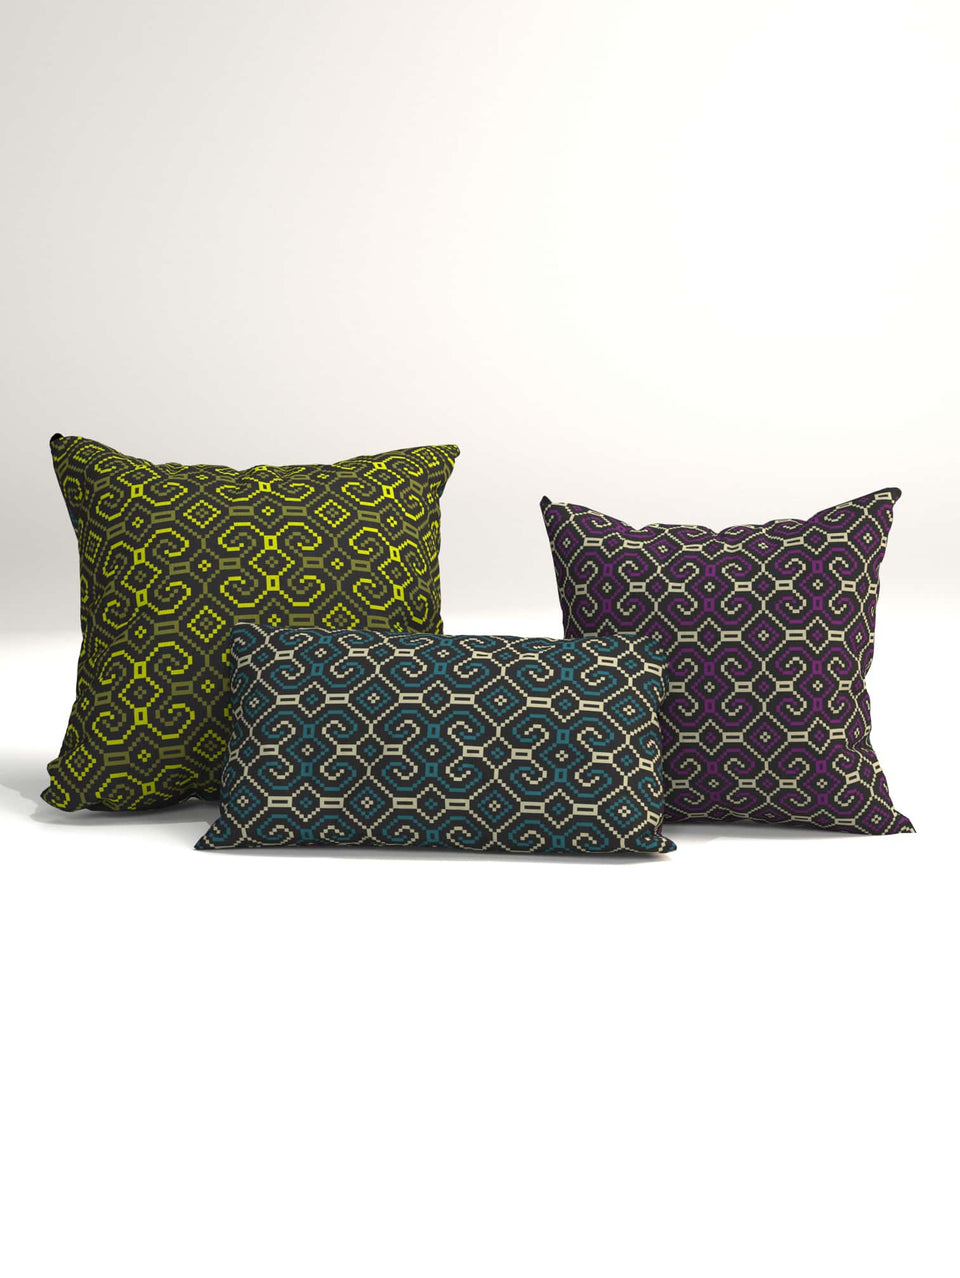 Shipibo-Conibo Cushion - Black on Grey